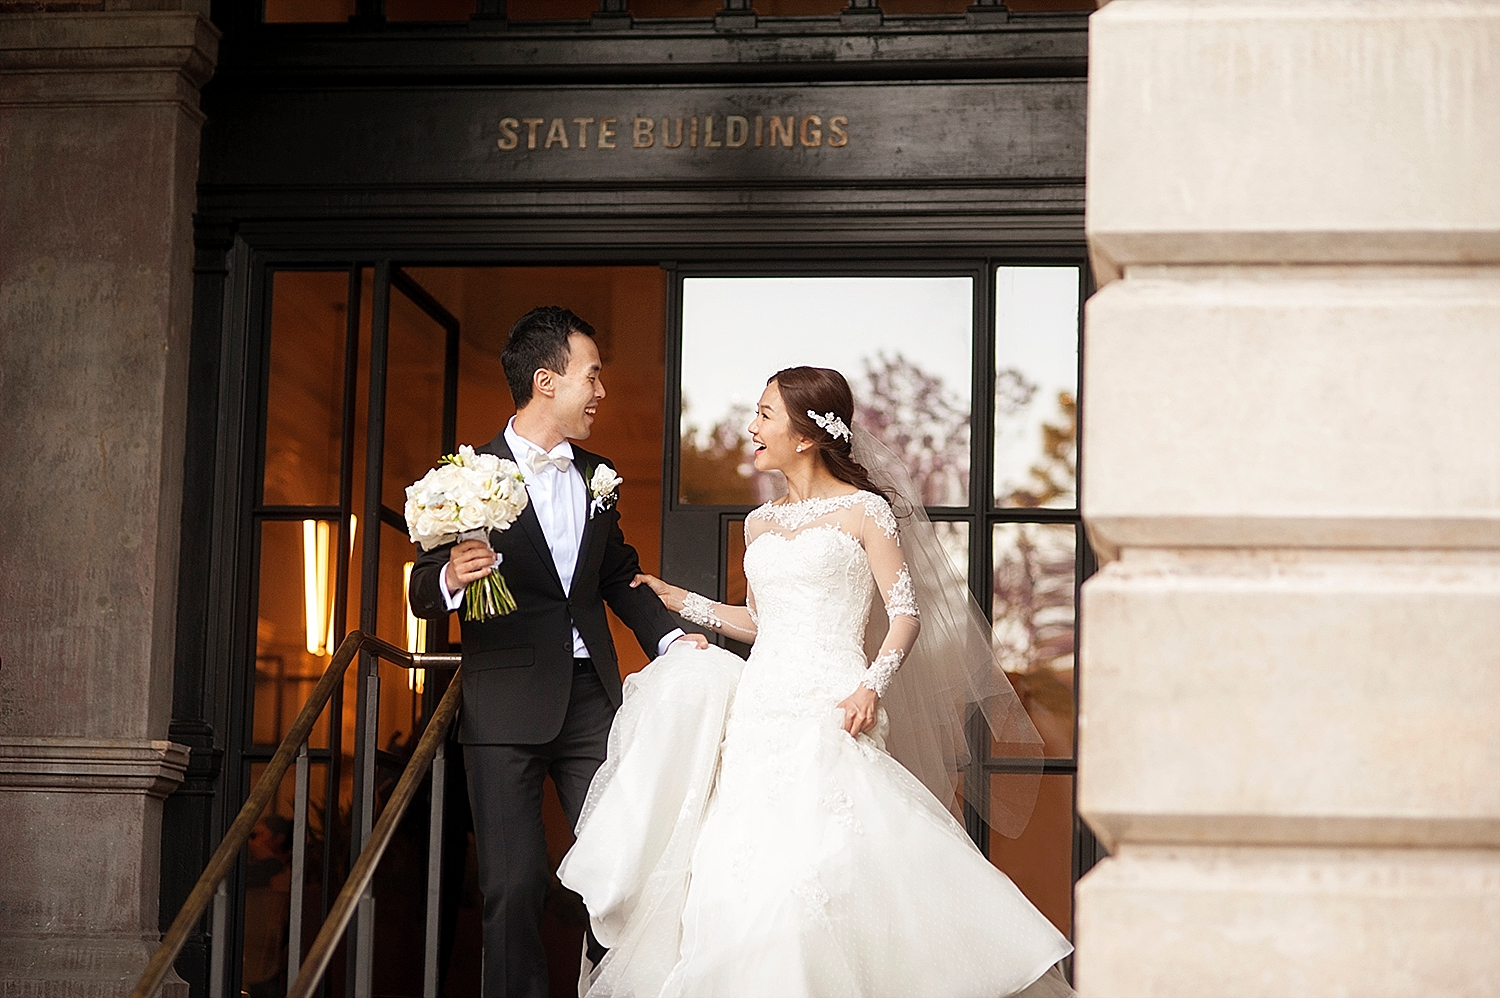 wedding photos in state buildings perth